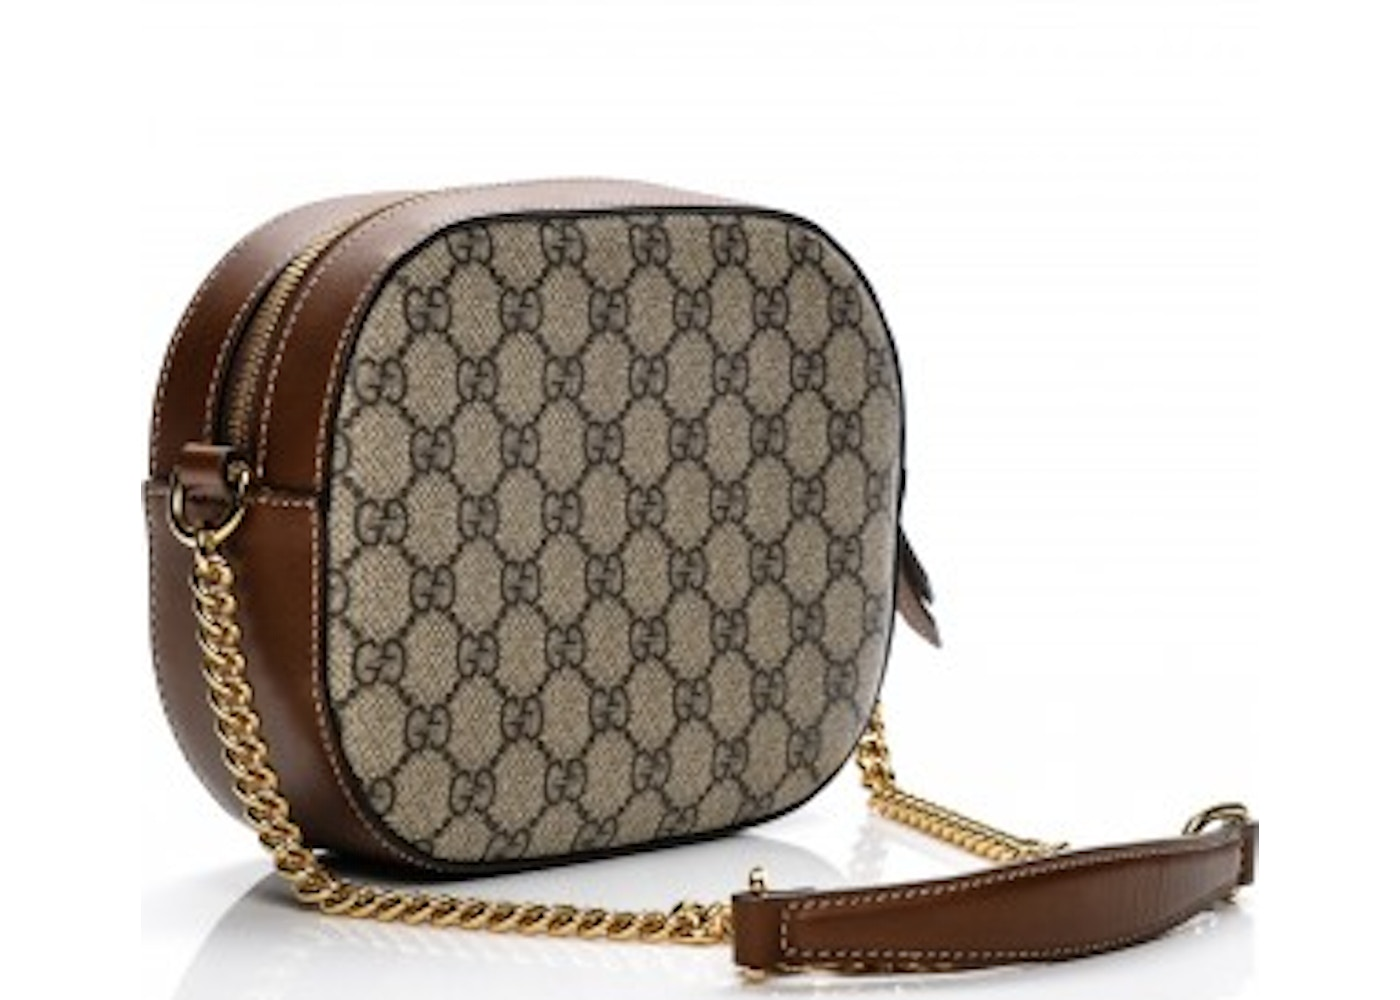 6b2fbd0be03 Gucci Chain Crossbody GG Supreme Monogram Embroidered Blind For Love Mini  Brown White